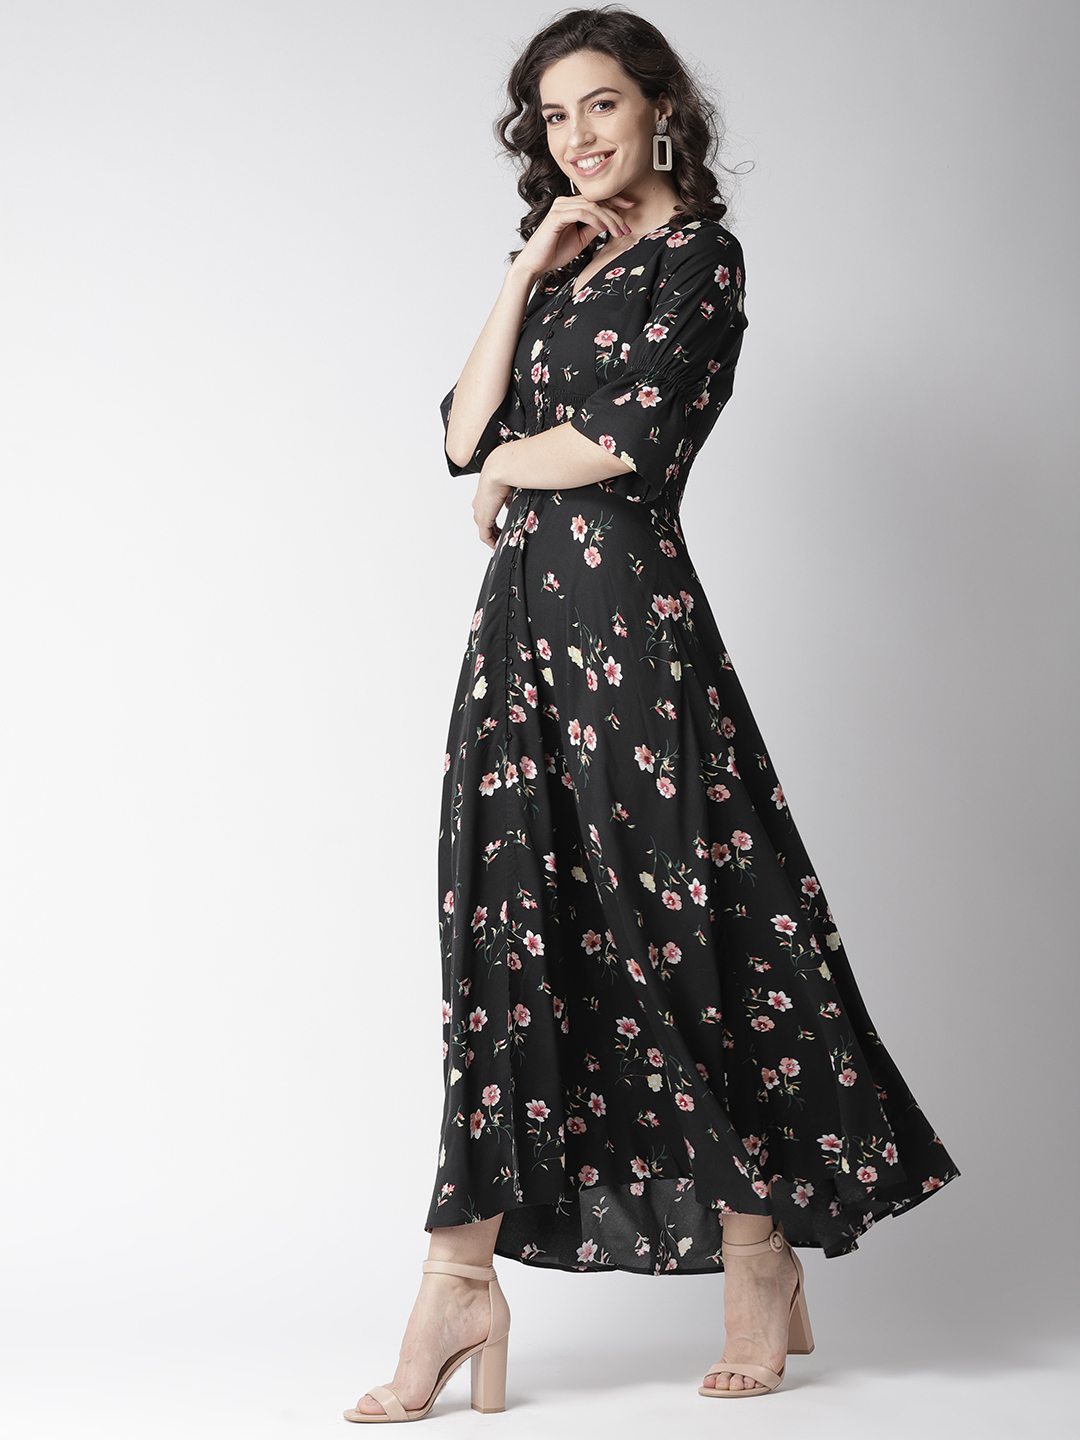 Dresses-Spot On Style Floral Maxi Dress2